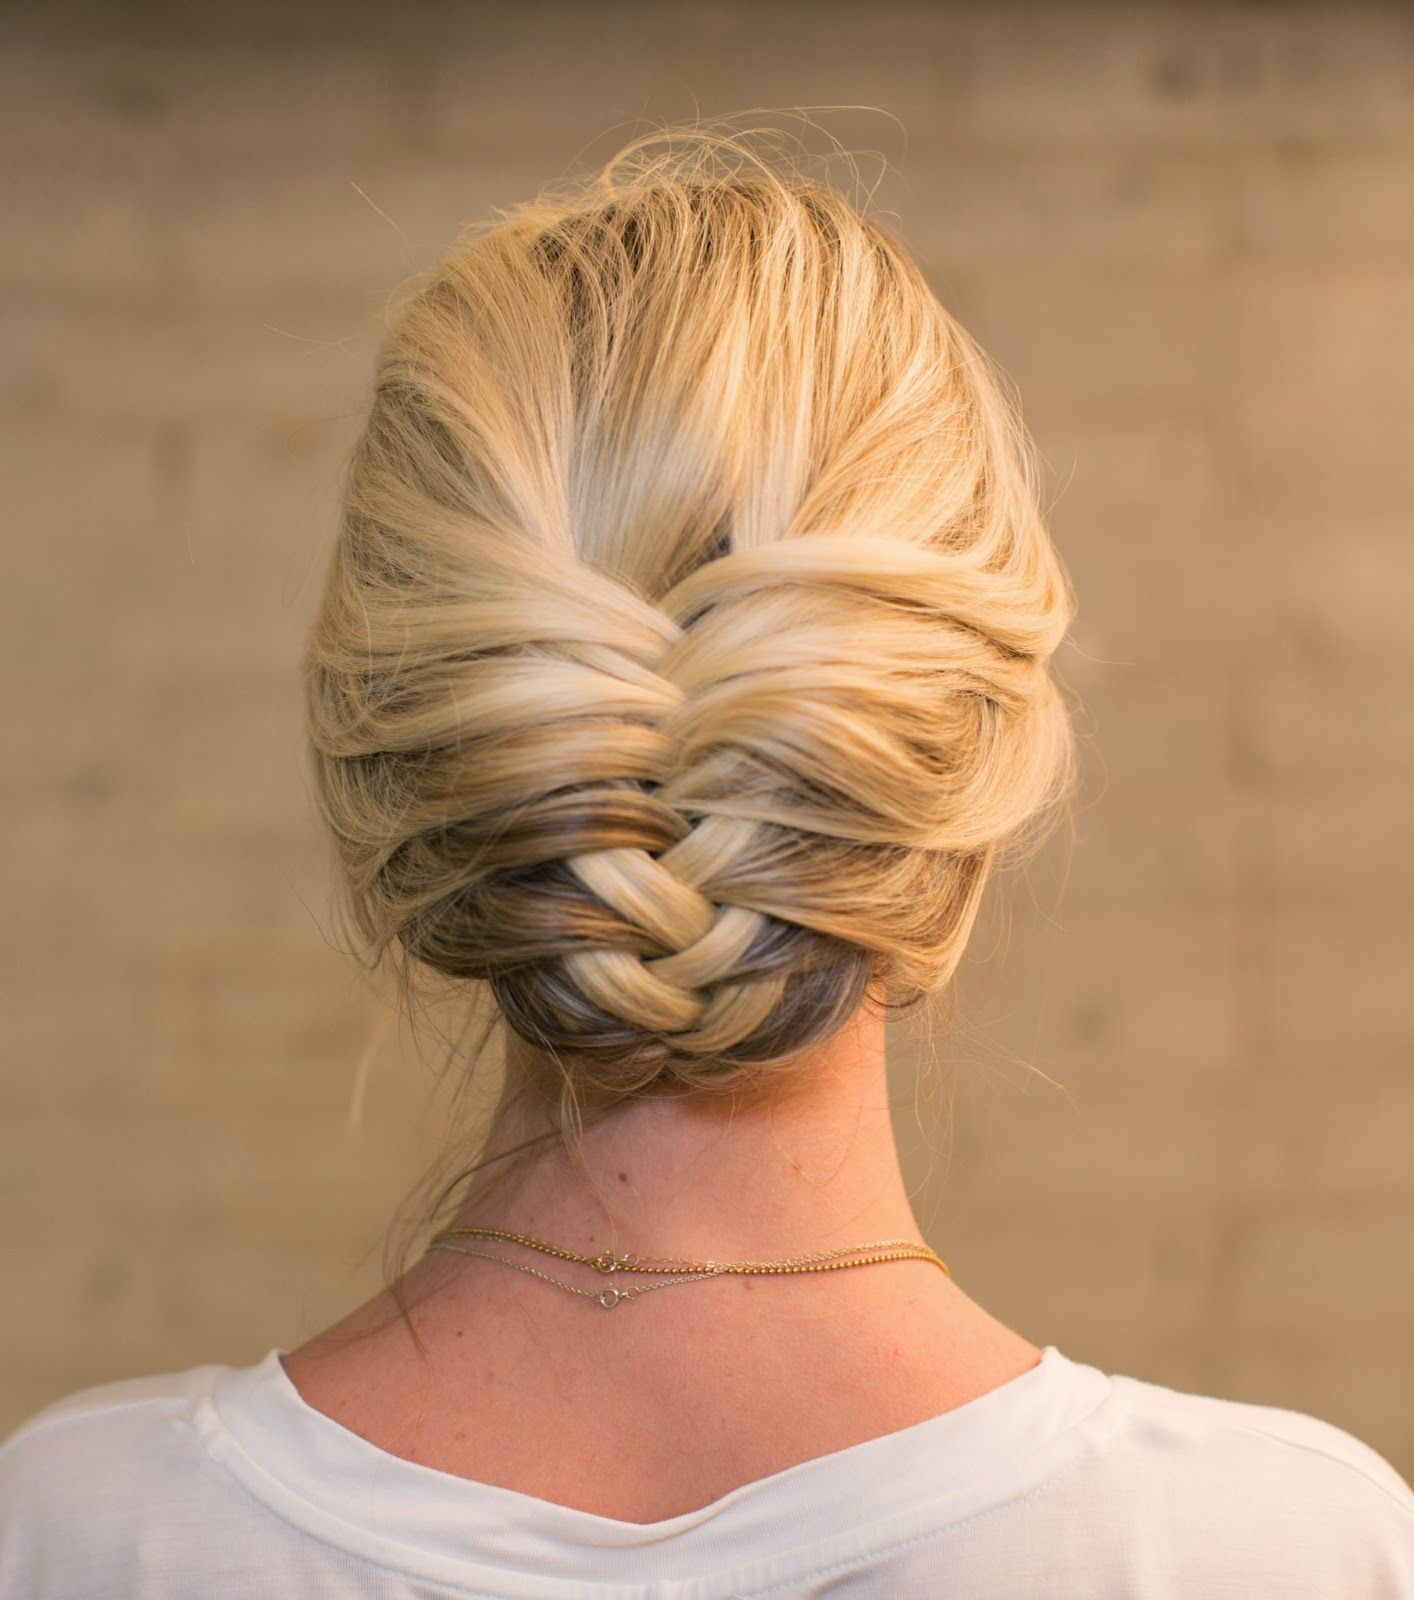 Fishtail Braid Wedding Hairstyles: Confessions Of A Hairstylist Hair Blog By Jenny Strebe